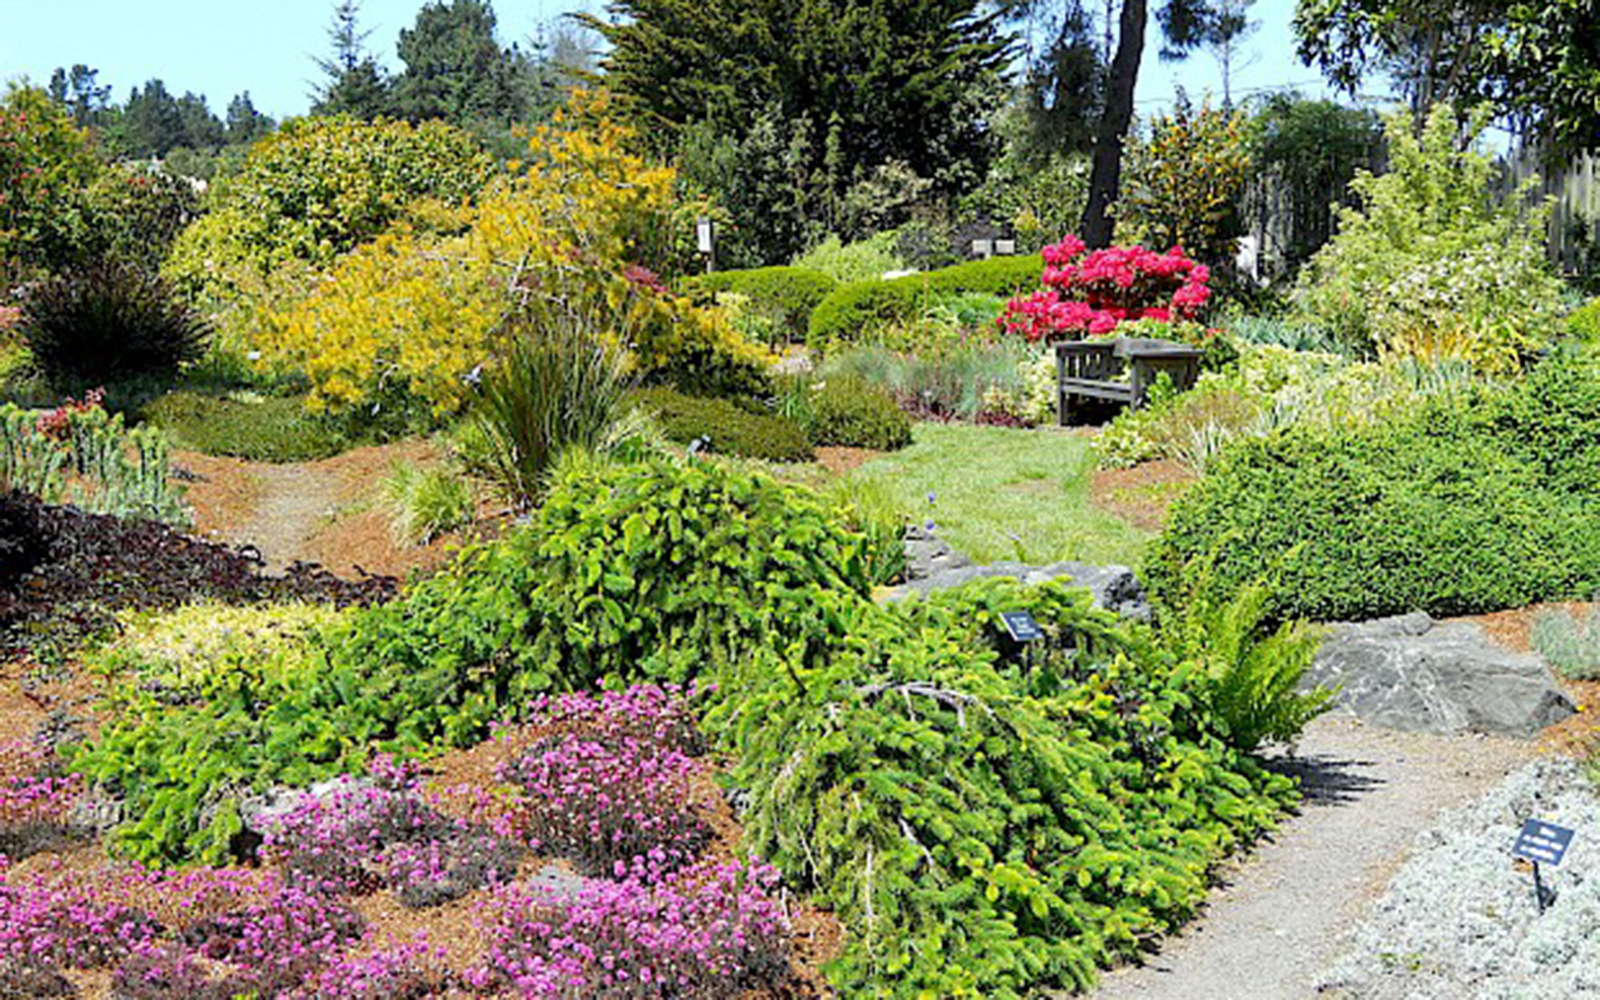 The 13 Best Public Gardens on the West Coast